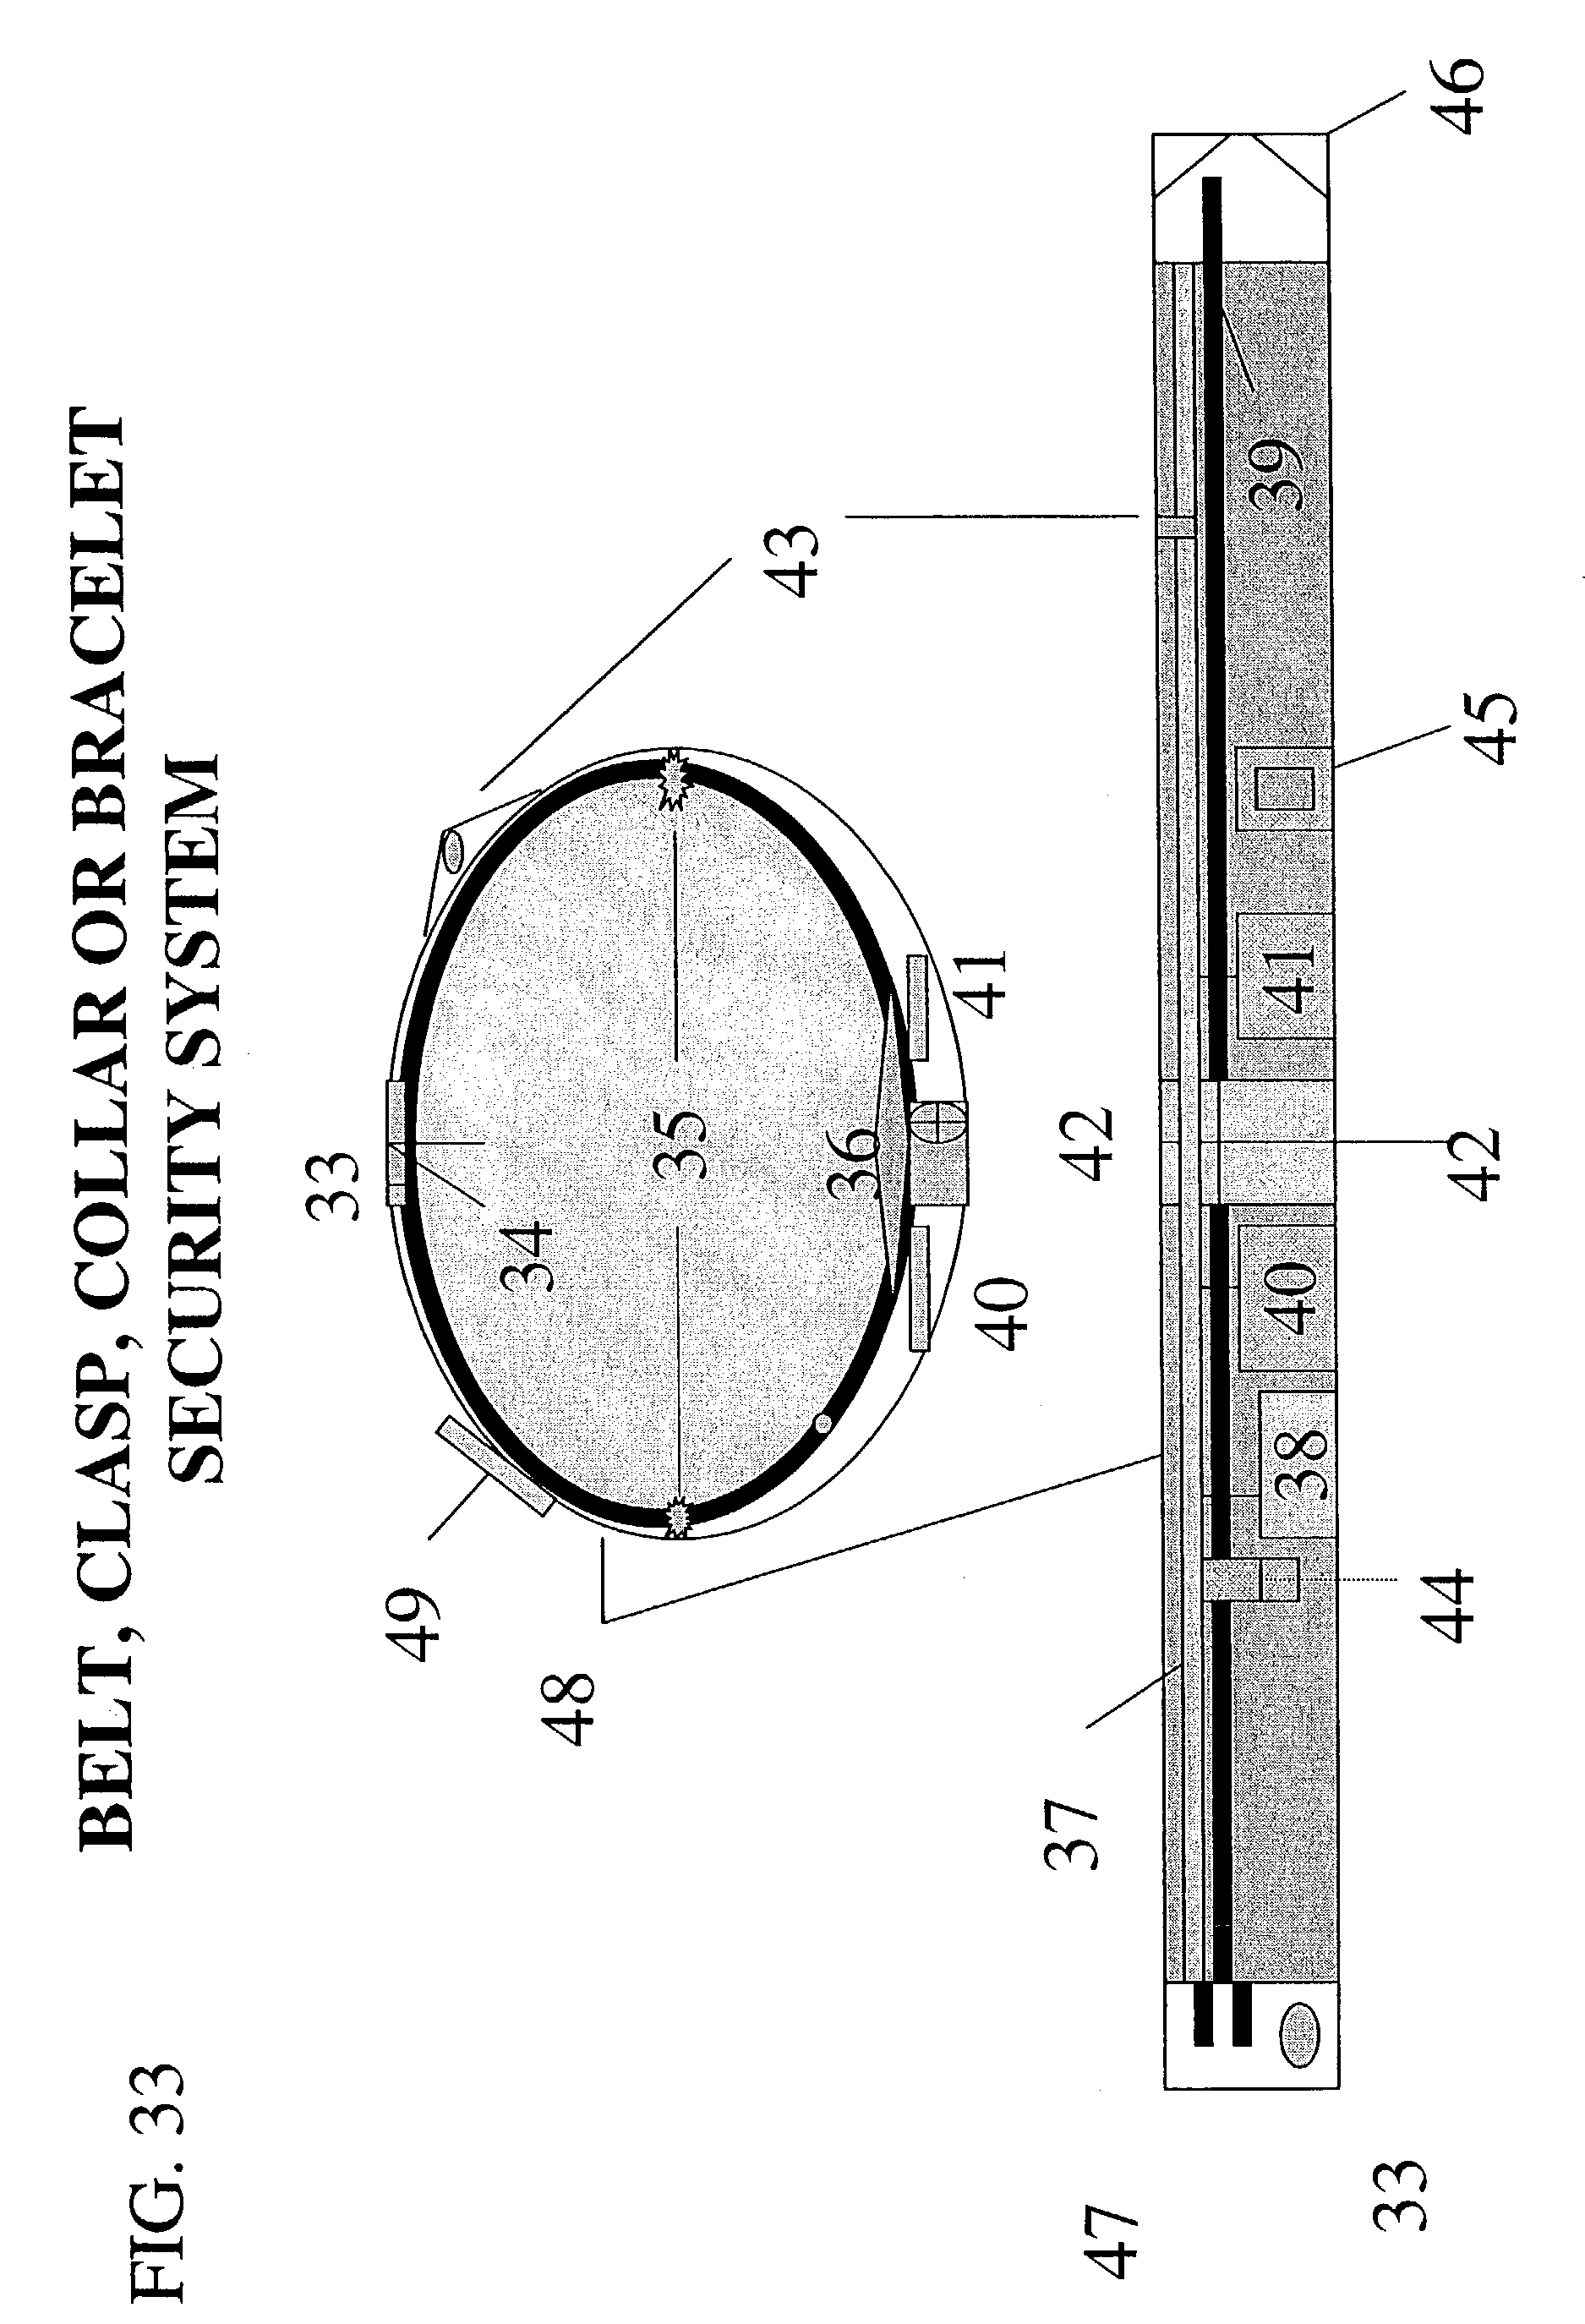 Patent Us 20030093187a1 29 Kb Jpeg 10 Minute Timer Circuit Electronic Circuits And Diagram Images